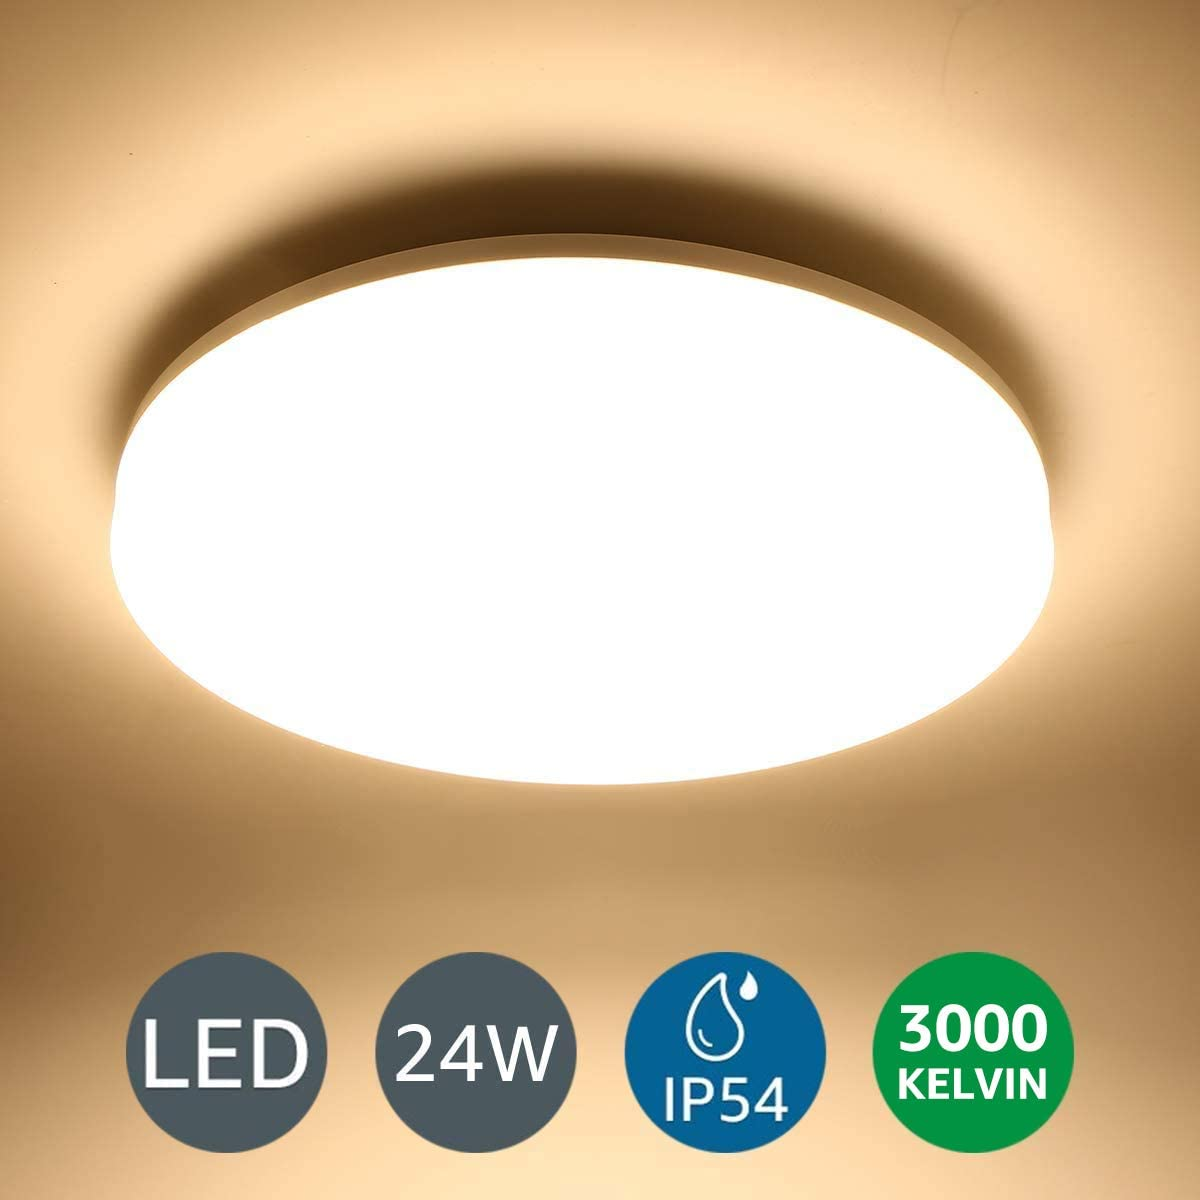 LE Flush Mount Ceiling Light Fixture Waterproof 24W LED Ceiling Light (2x100W Equivalent), 2400lm 13 Inch 3000K Warm White Ceiling Lamp for Bathroom, Kitchen, Bedroom, Porch, Hallway, Non Dimmable